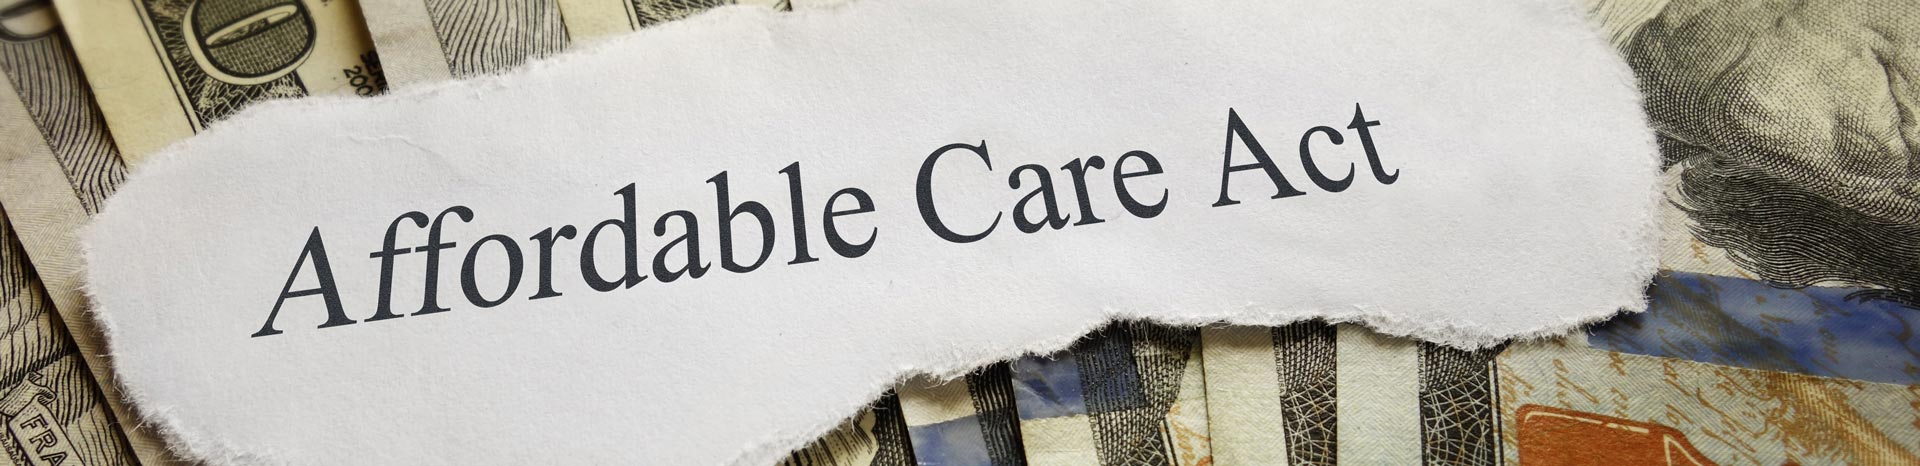 Affordable Care Act banner